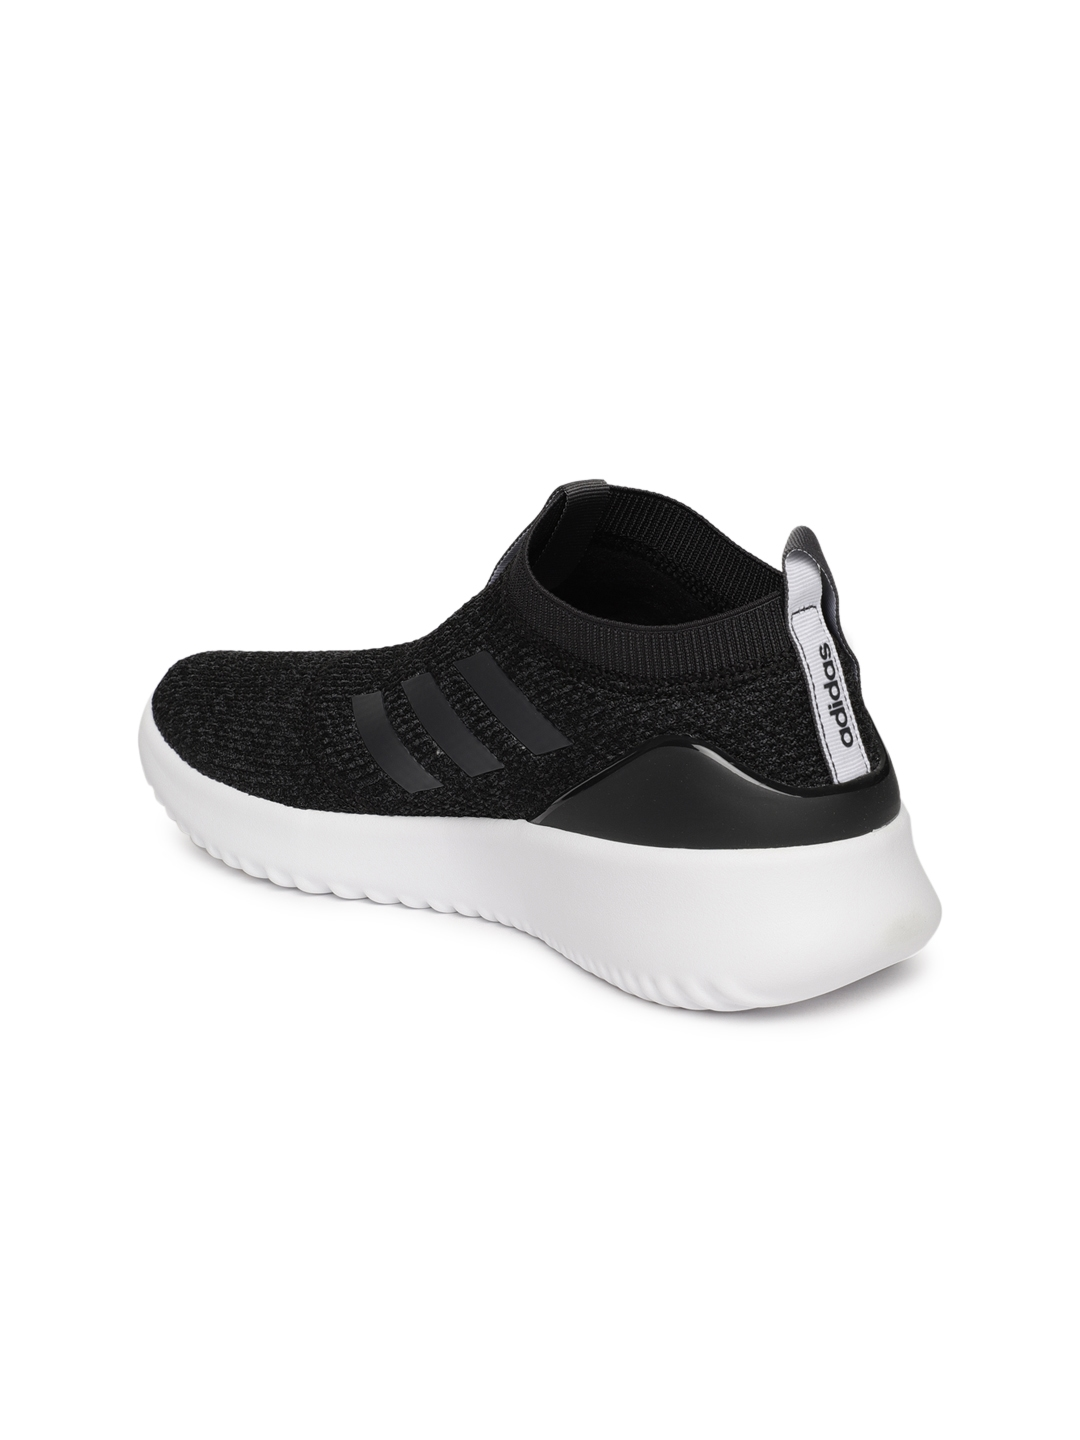 Buy ADIDAS Women Black Solid Ultimafusion Mid Top Running Shoes ... b9dc19240